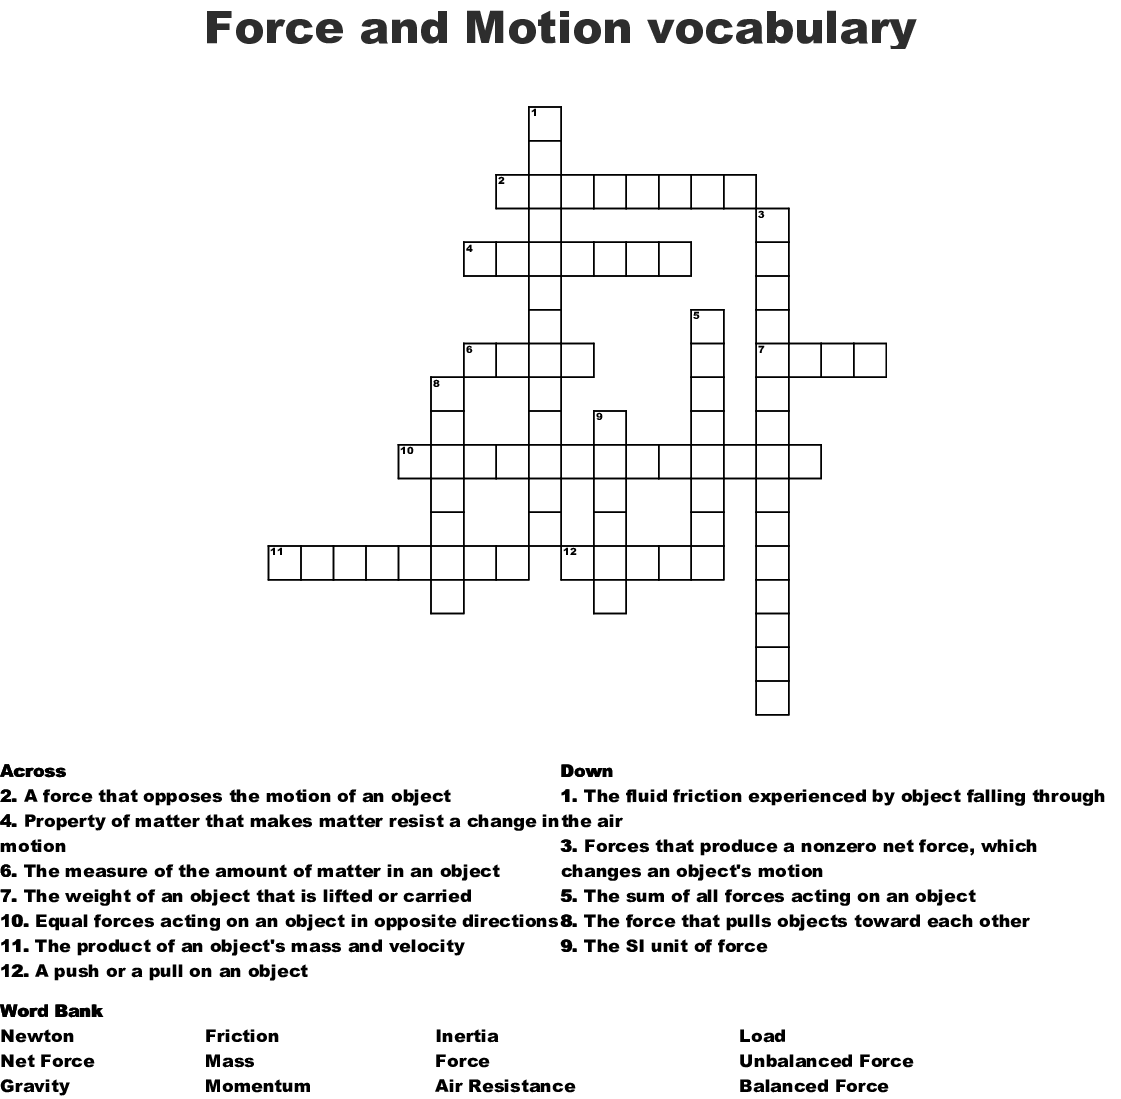 Force And Motion Vocabulary Crossword